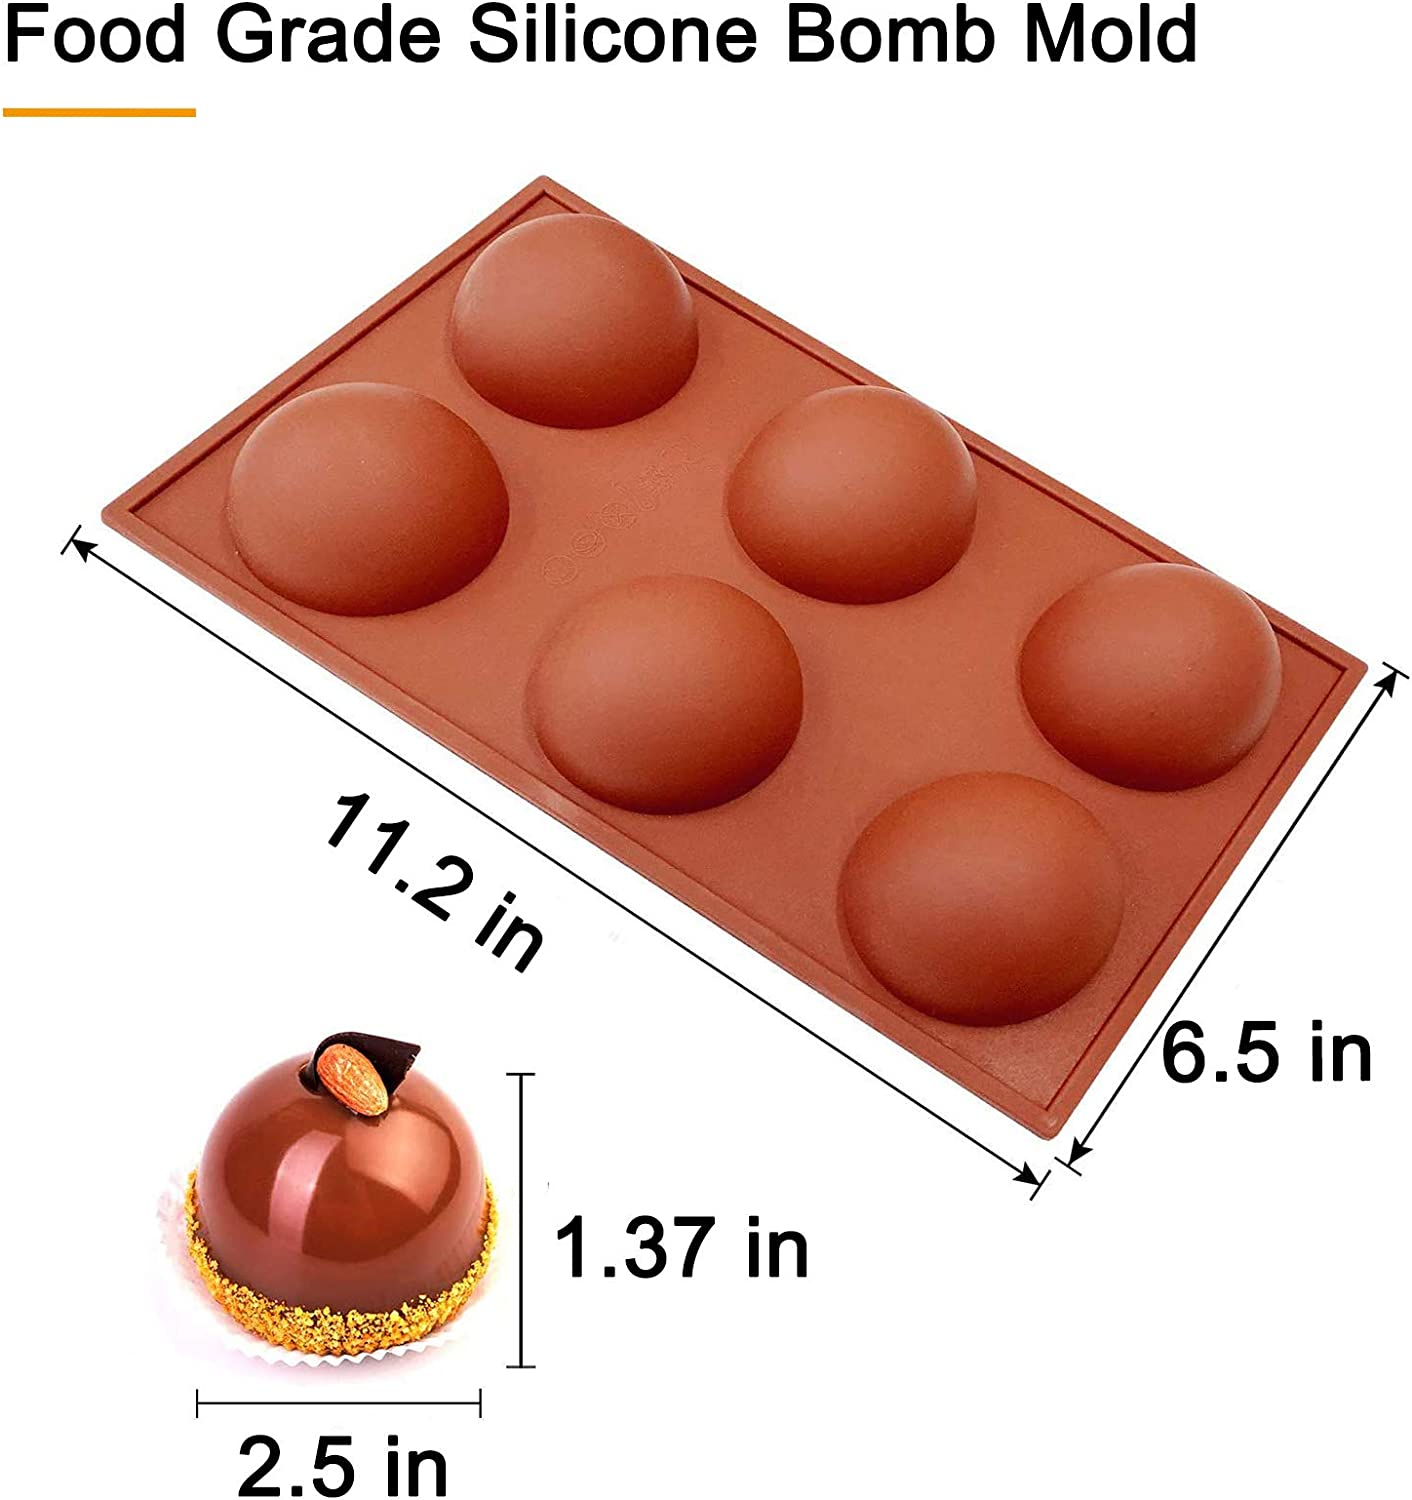 Jelly Dome Mousse 2PCS Cake Hot Chocolate Bomb Mold Large Chocolate Sphere Mold Mousse Mold Silicone Ball Baking 6 Holes for Making Hot Chocolate Bomb